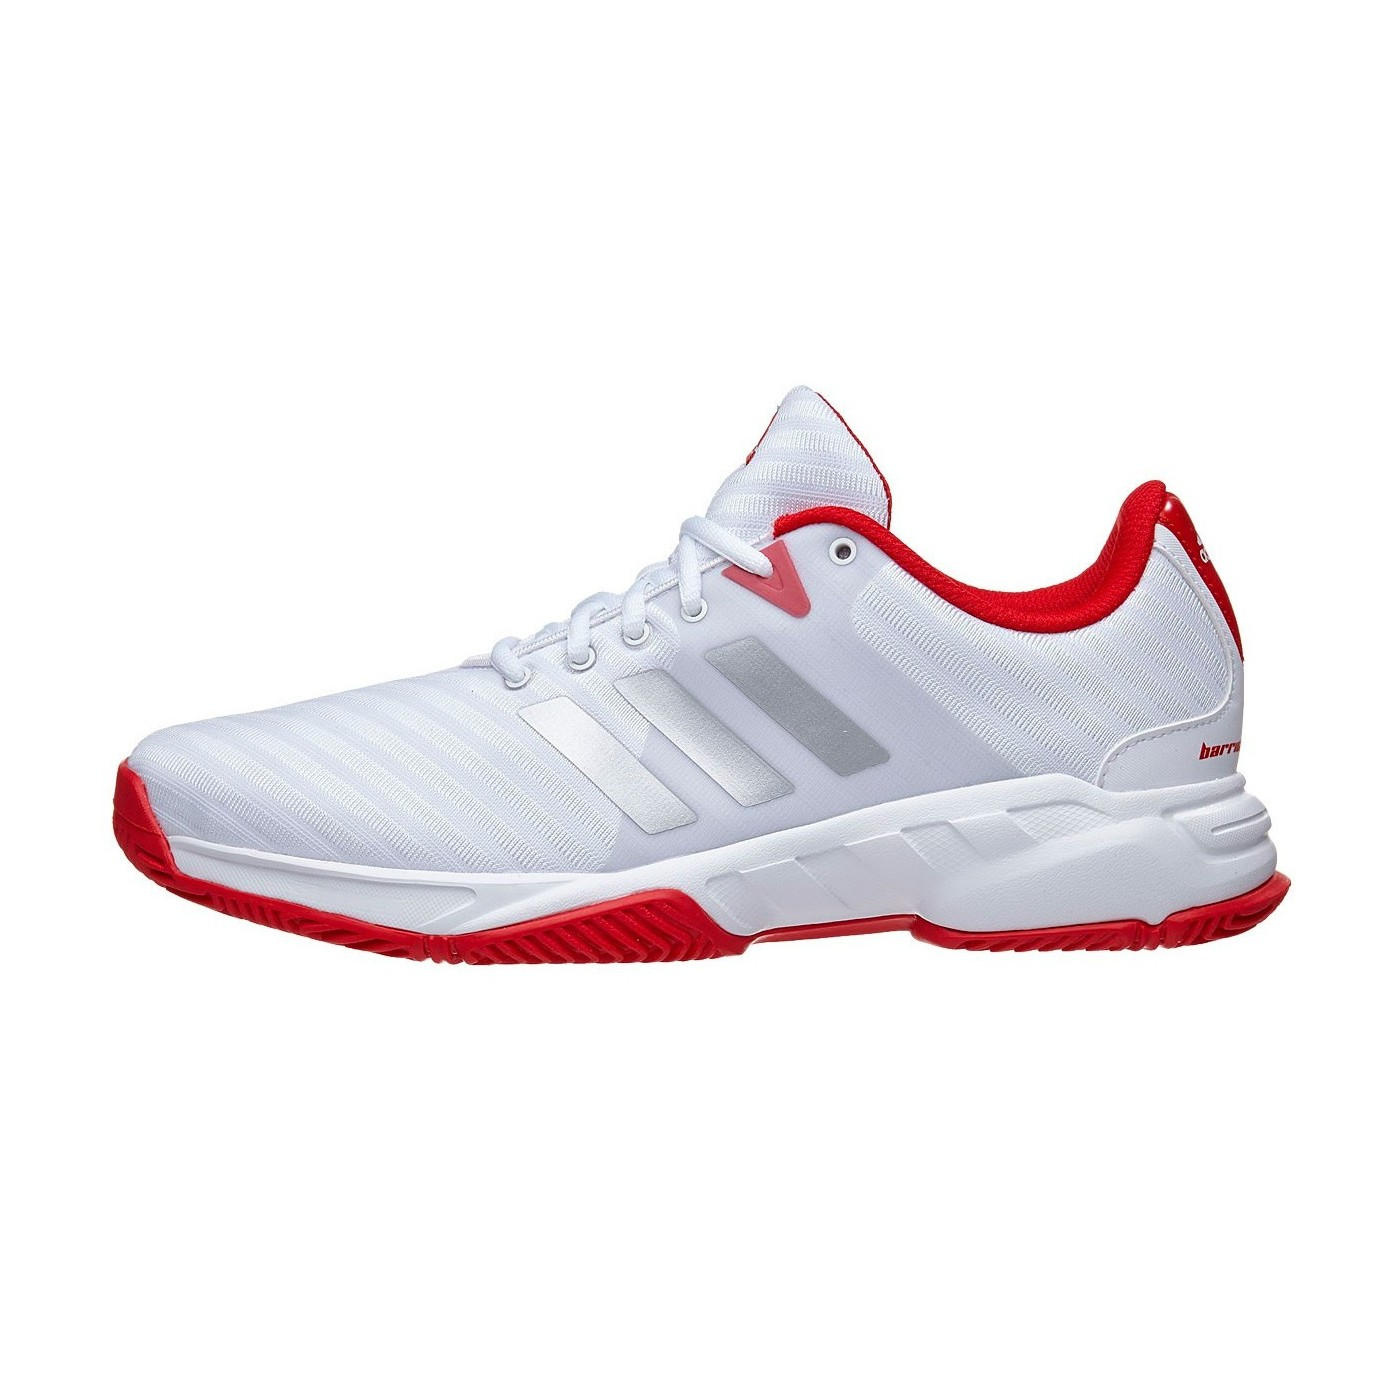 huge selection of c6c2f 92106 Zapatillas Adidas Barricade Court 3 Blanco  Rojo